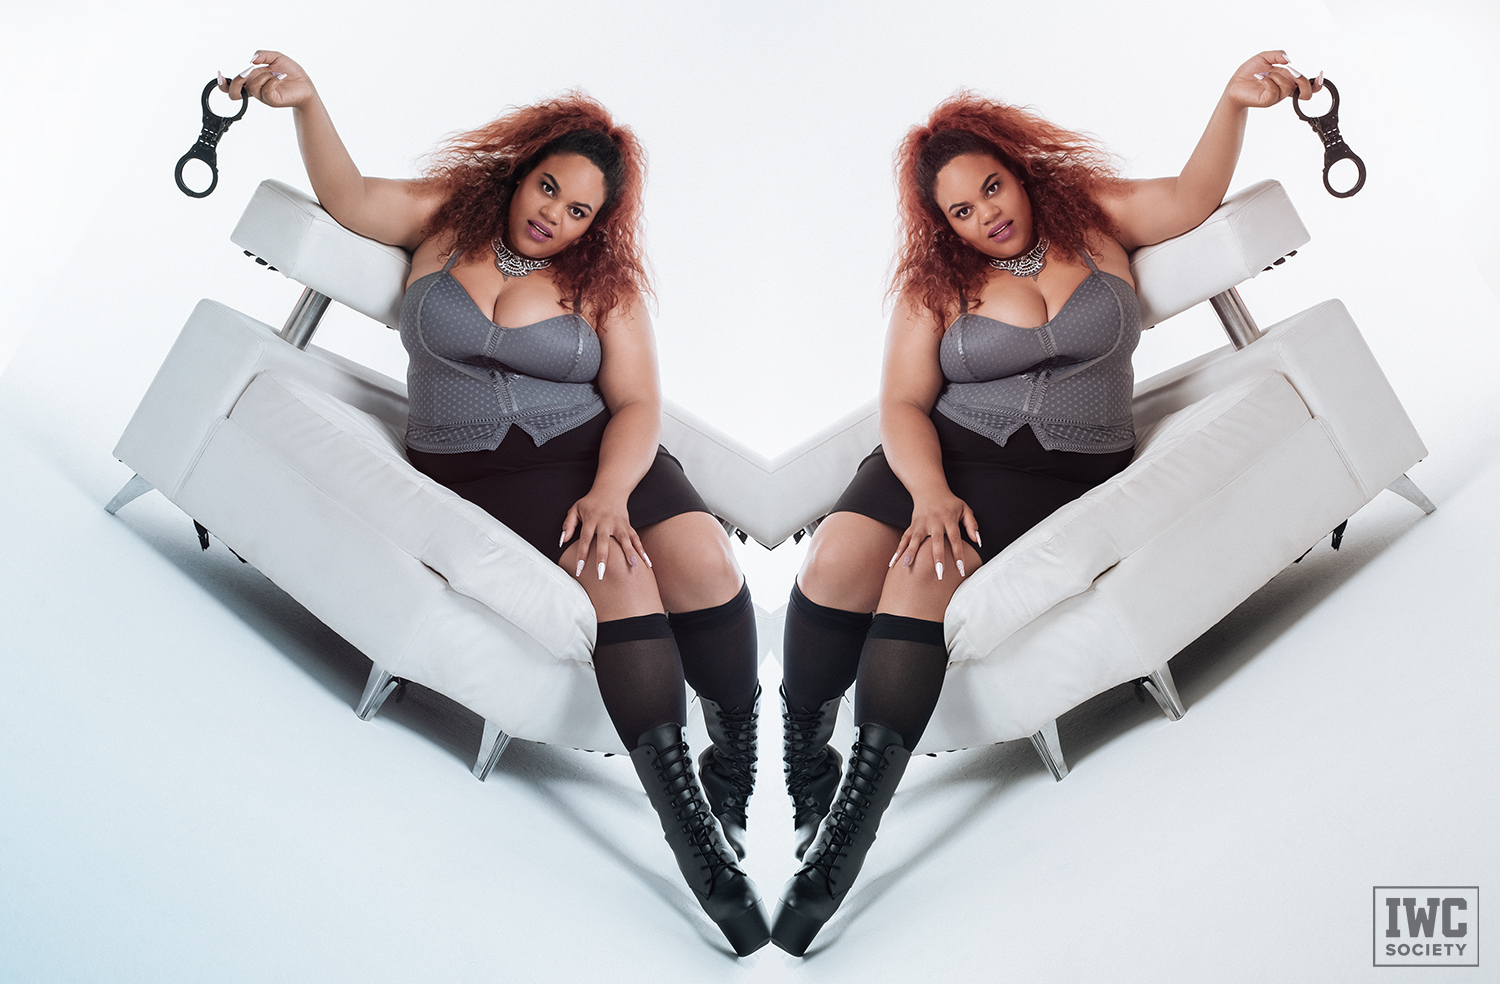 bbw femdom Ms Charmness posing on a modern white chair with black handcuffs